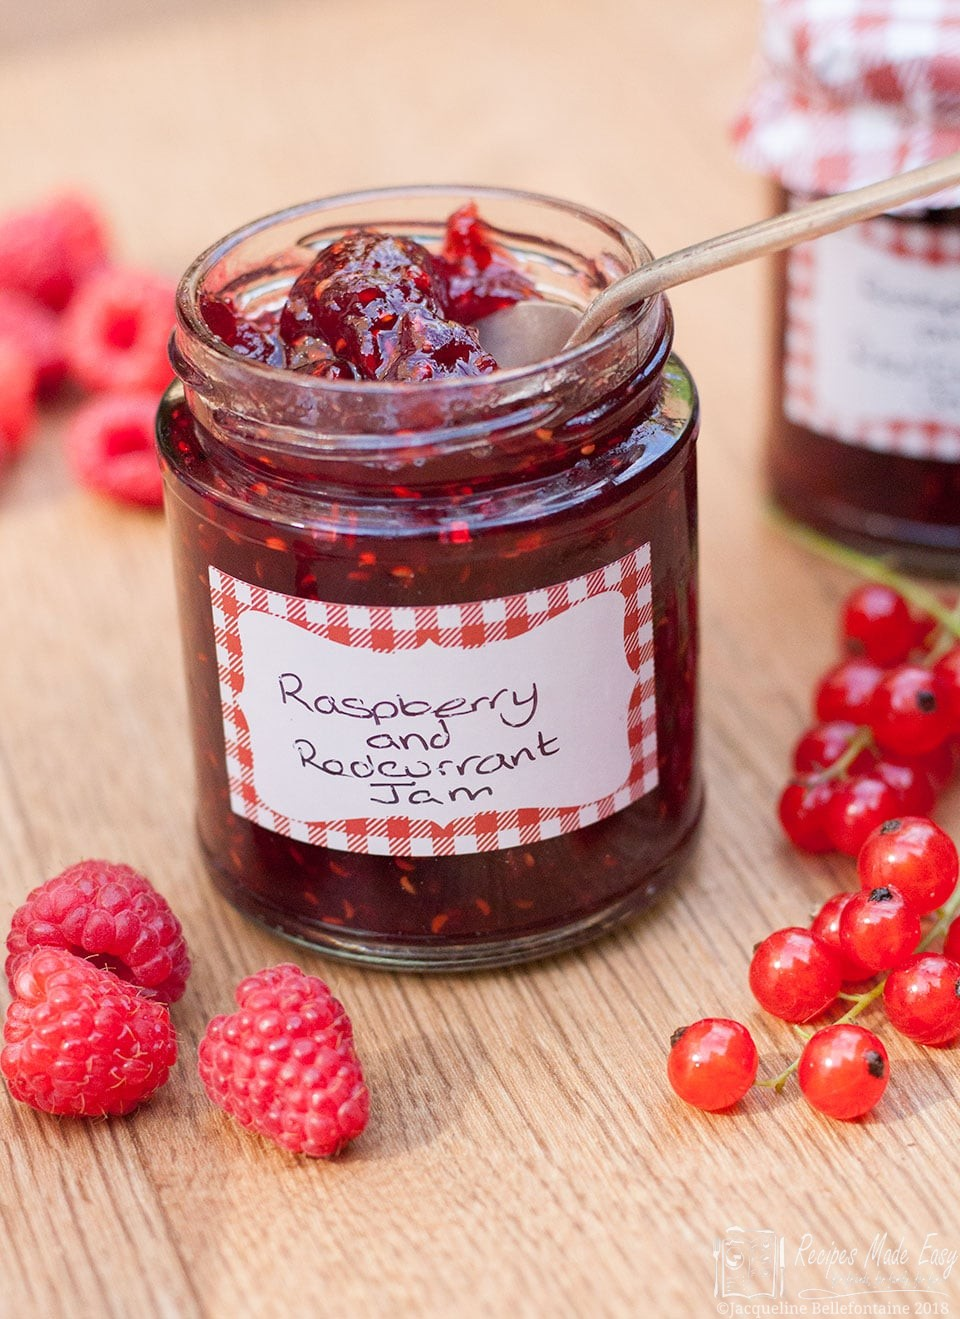 Open jar of raspebrry and redcurrant jam by recipes made easy. Spoon in jar and surrounded by raspberries and redcurrants.